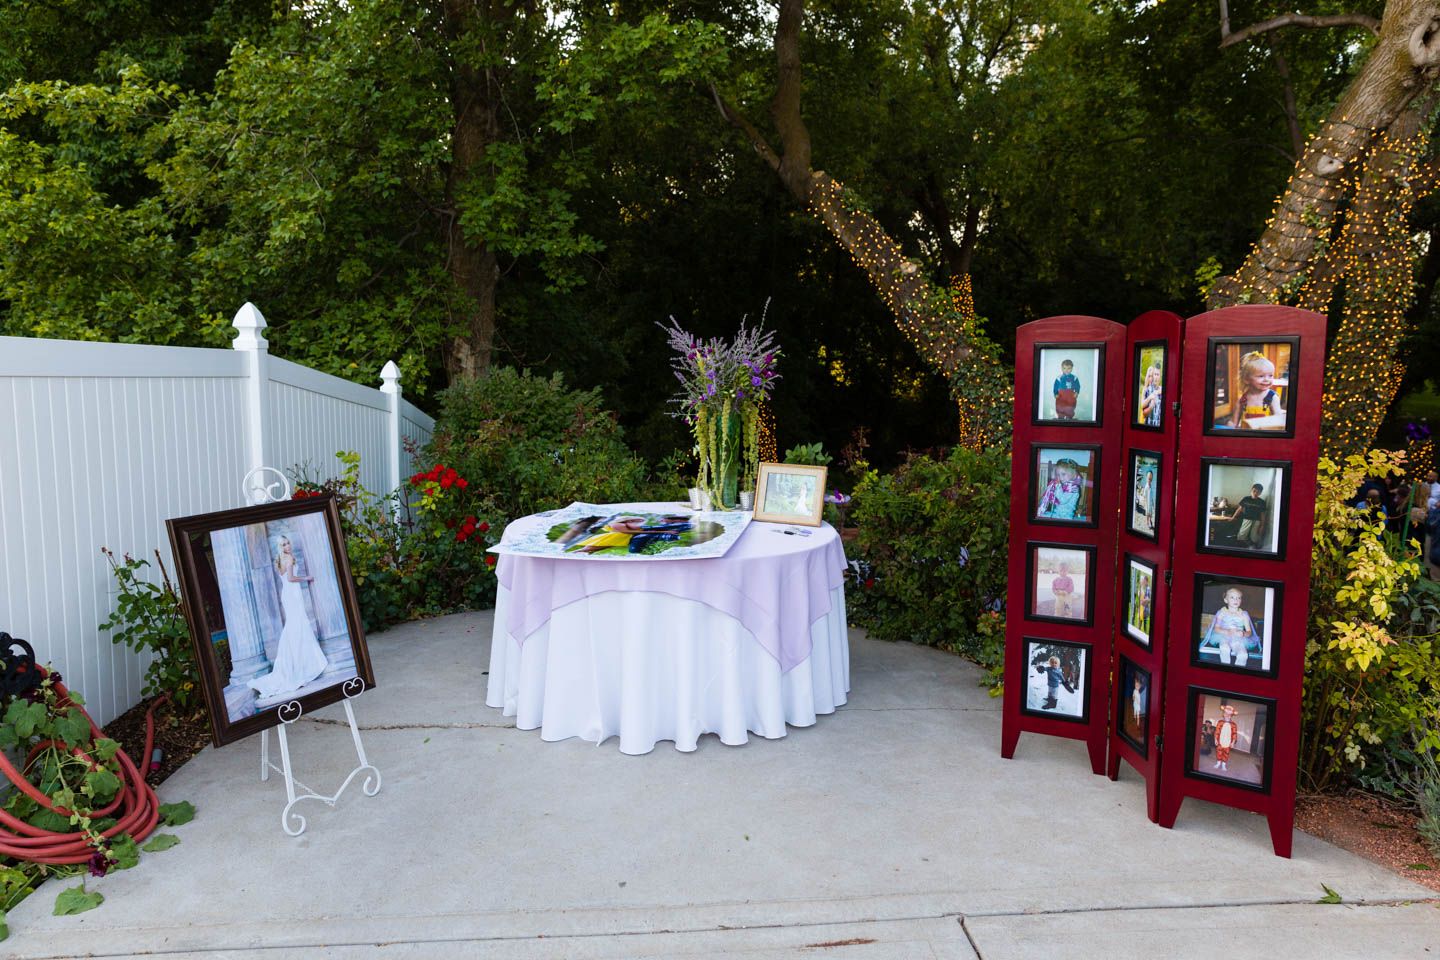 The signing area decorated with photos of the new couple